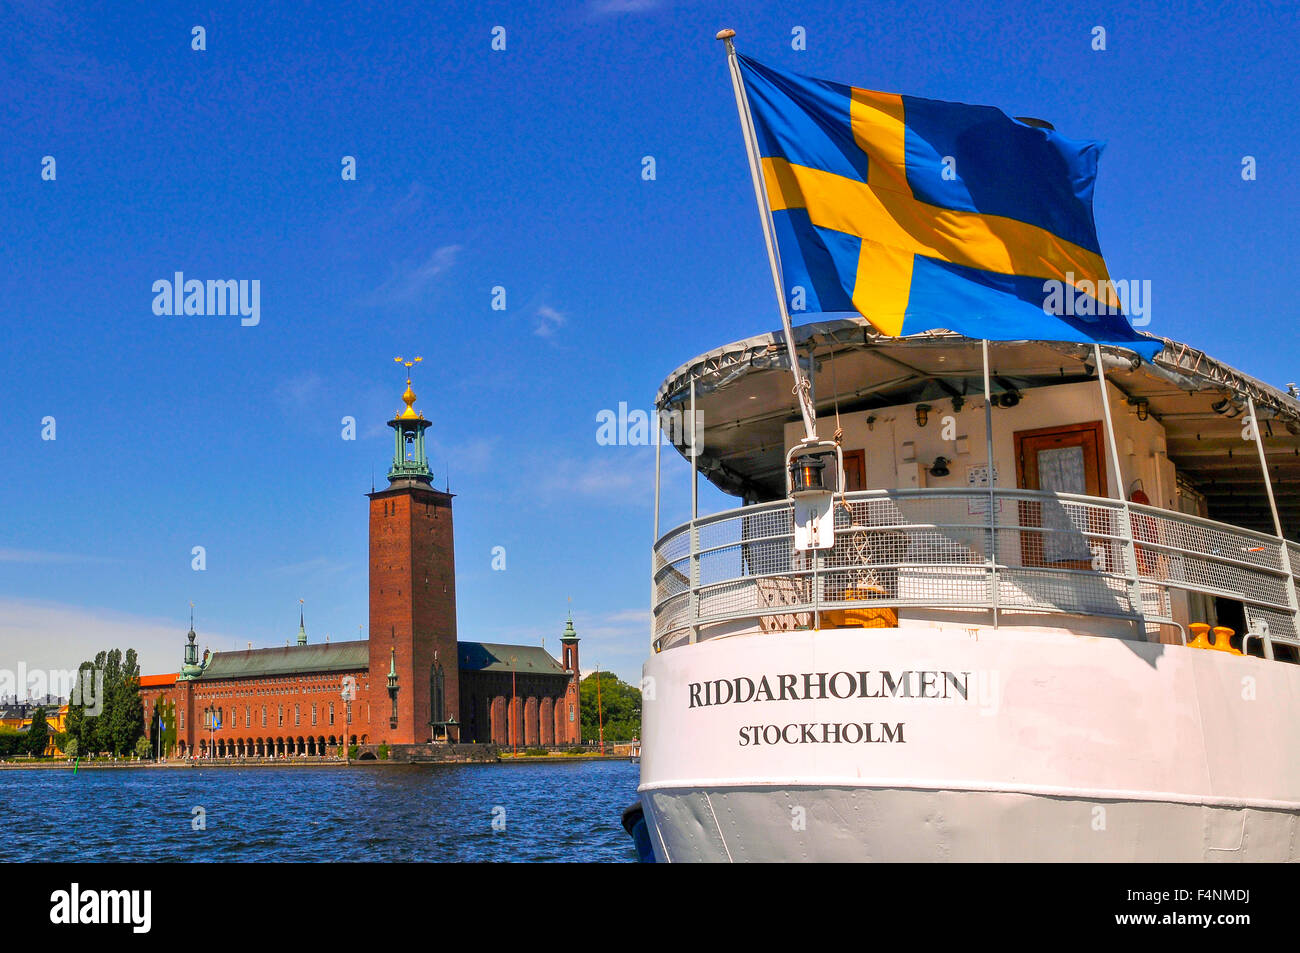 Sweden Stockholm Stadhuset or Town Hall as seen from Riddar Dolmen - Stock Image